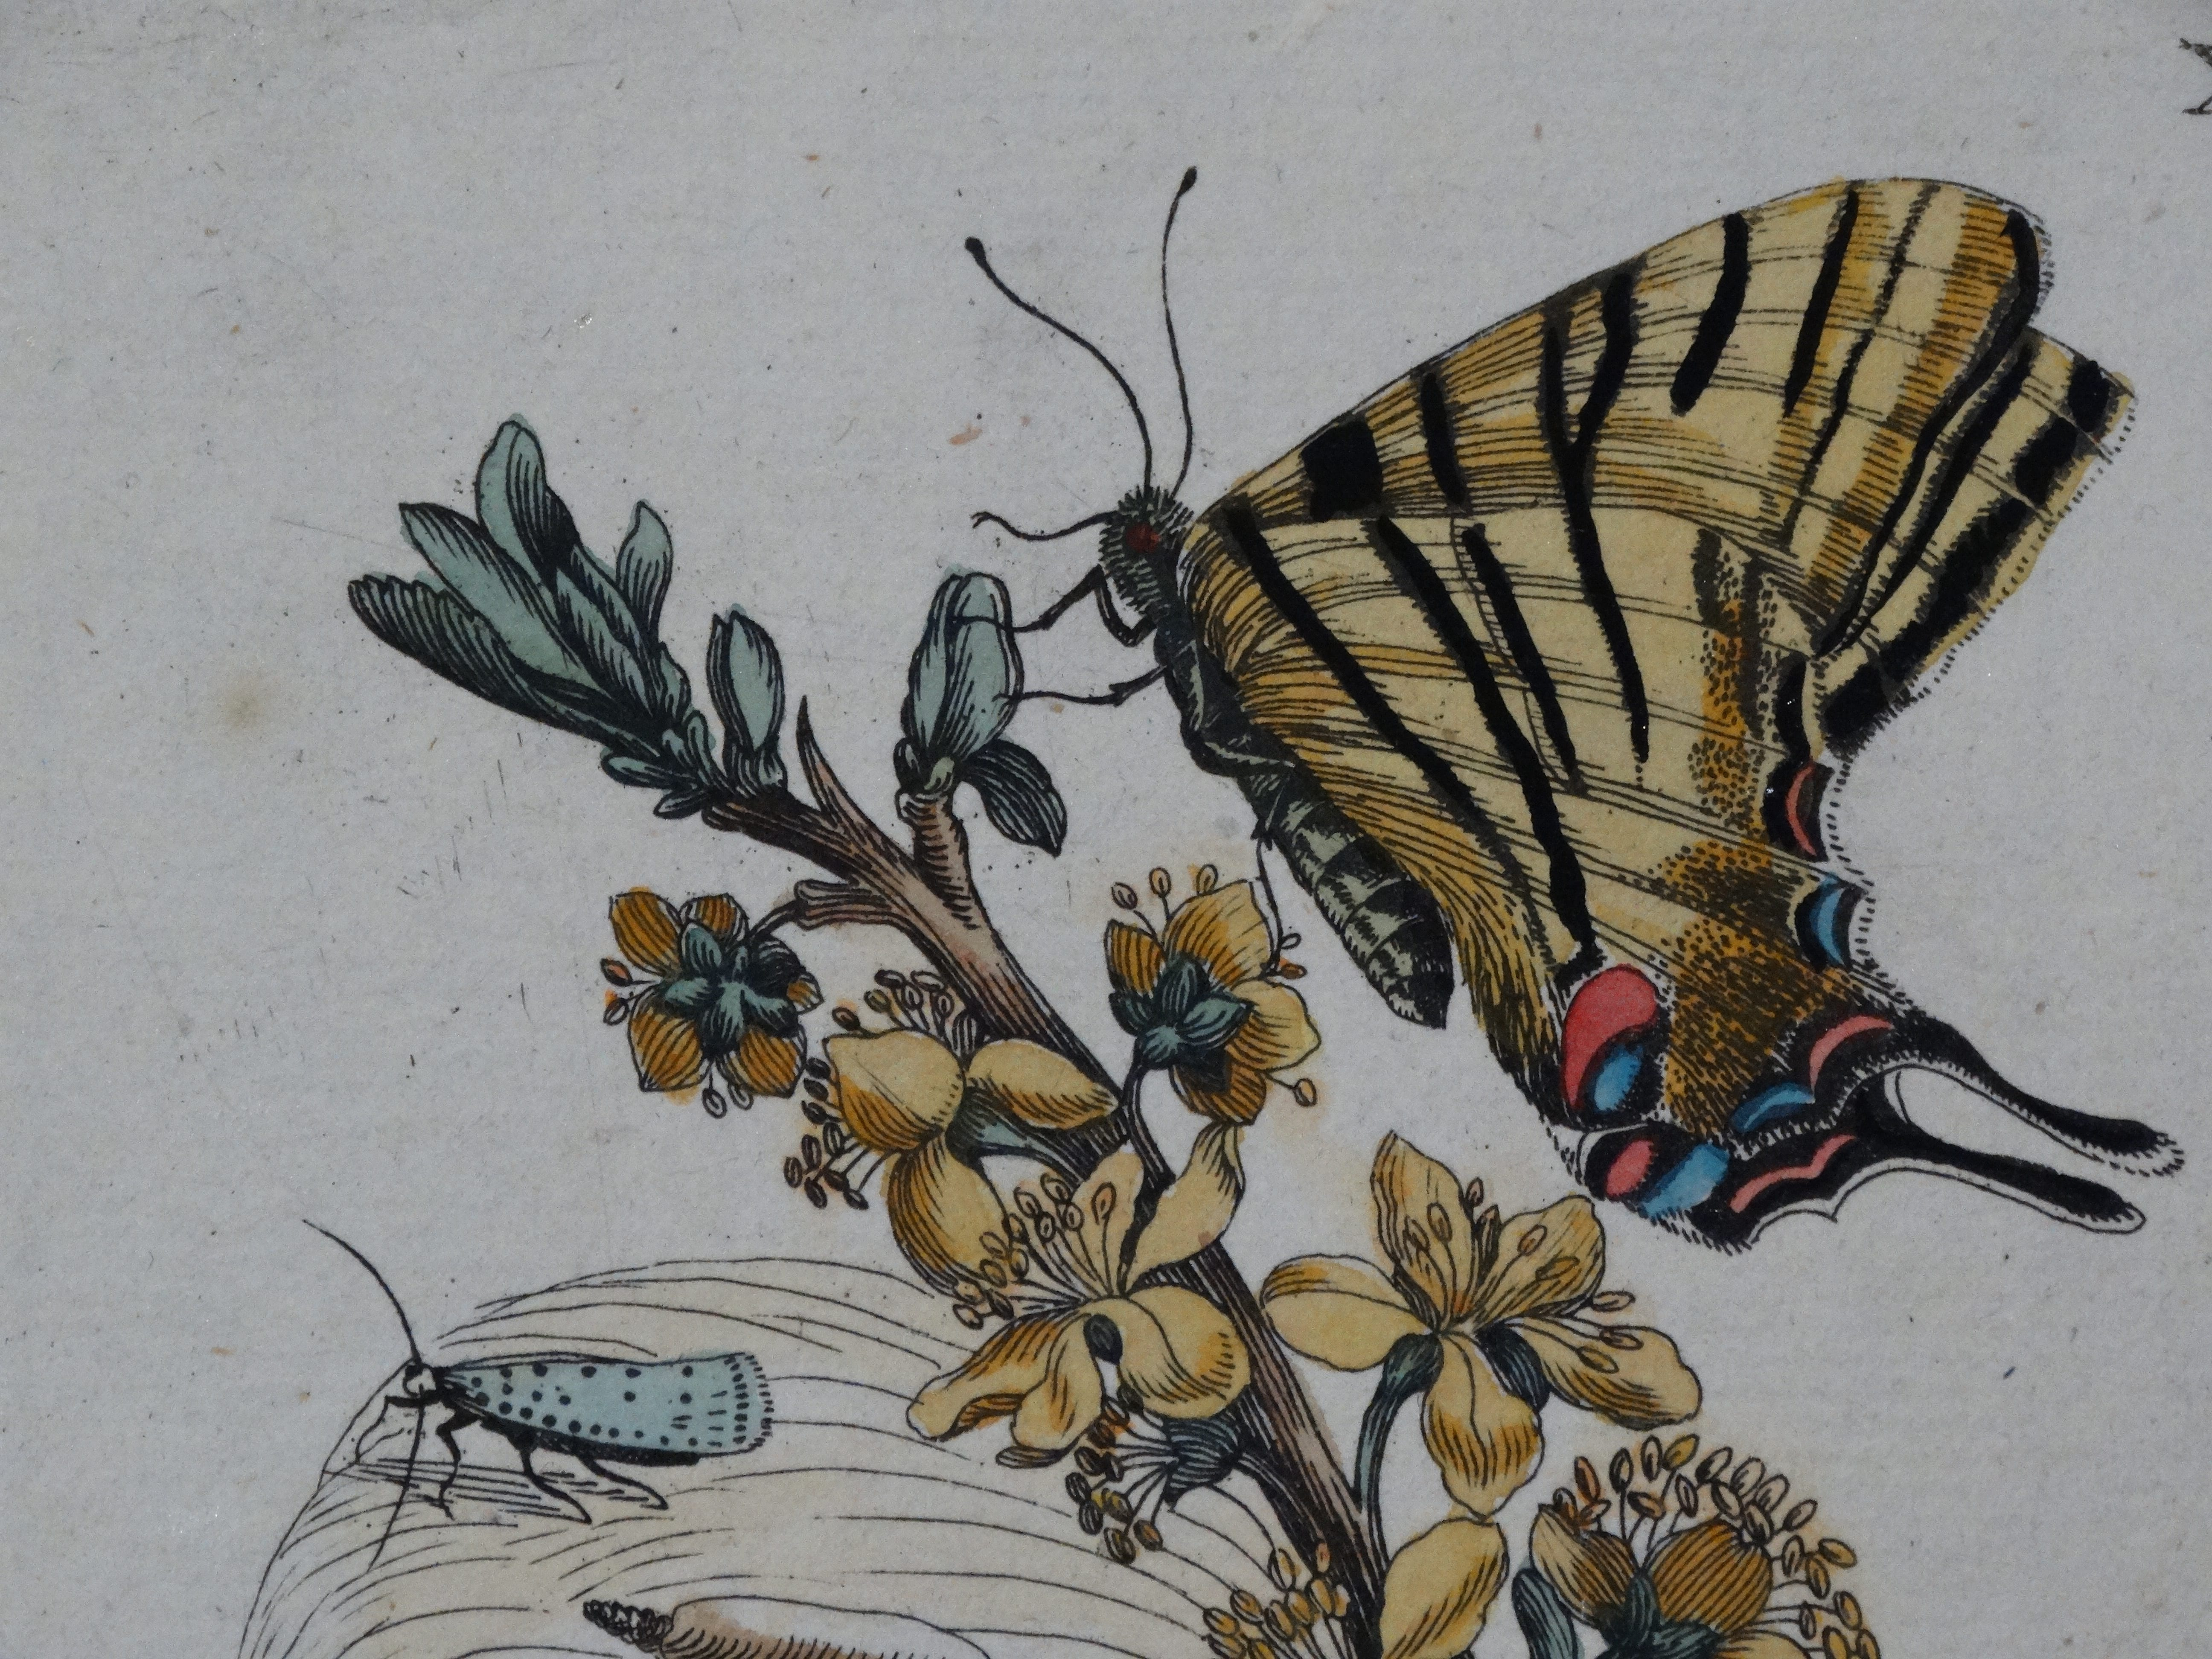 Insect Prints Maria Sybilla Merian.  Her Insects of Surinam and Insects of Europe illustrate the Transformations & Metamorphosis of Insects and the plants on which they fed.   These  Insect Prints by Maria Sybilla Merian, are some of the most famous documents published on the subject of Insect transformation during the 18th Century.